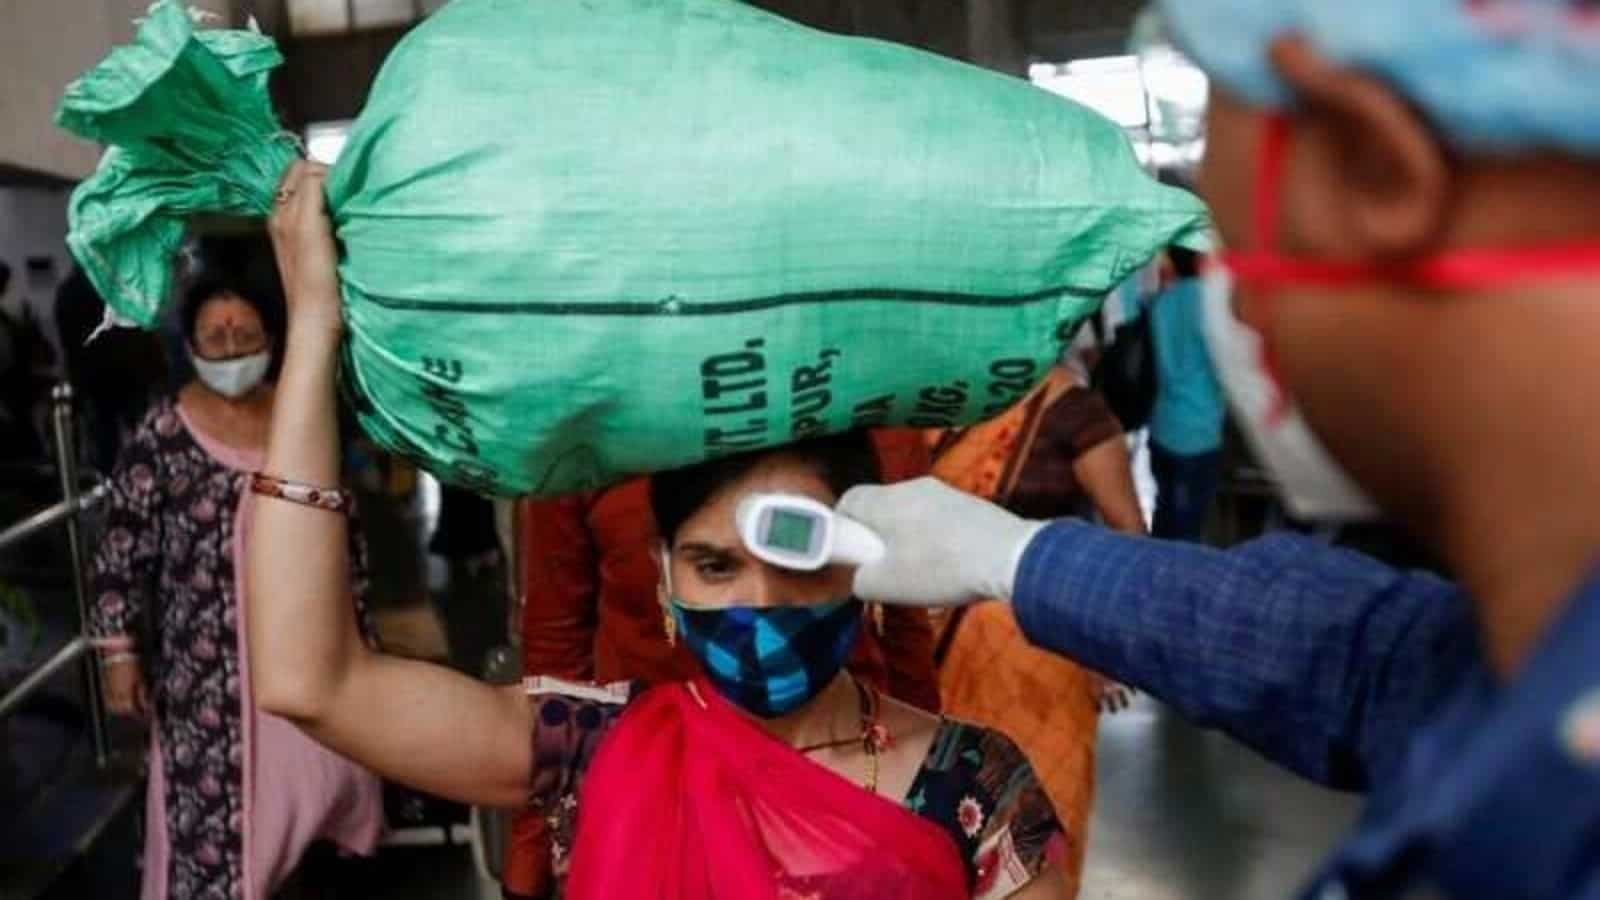 Coronavirus update: India adds close to 40,000 new cases, biggest increase in 4 months